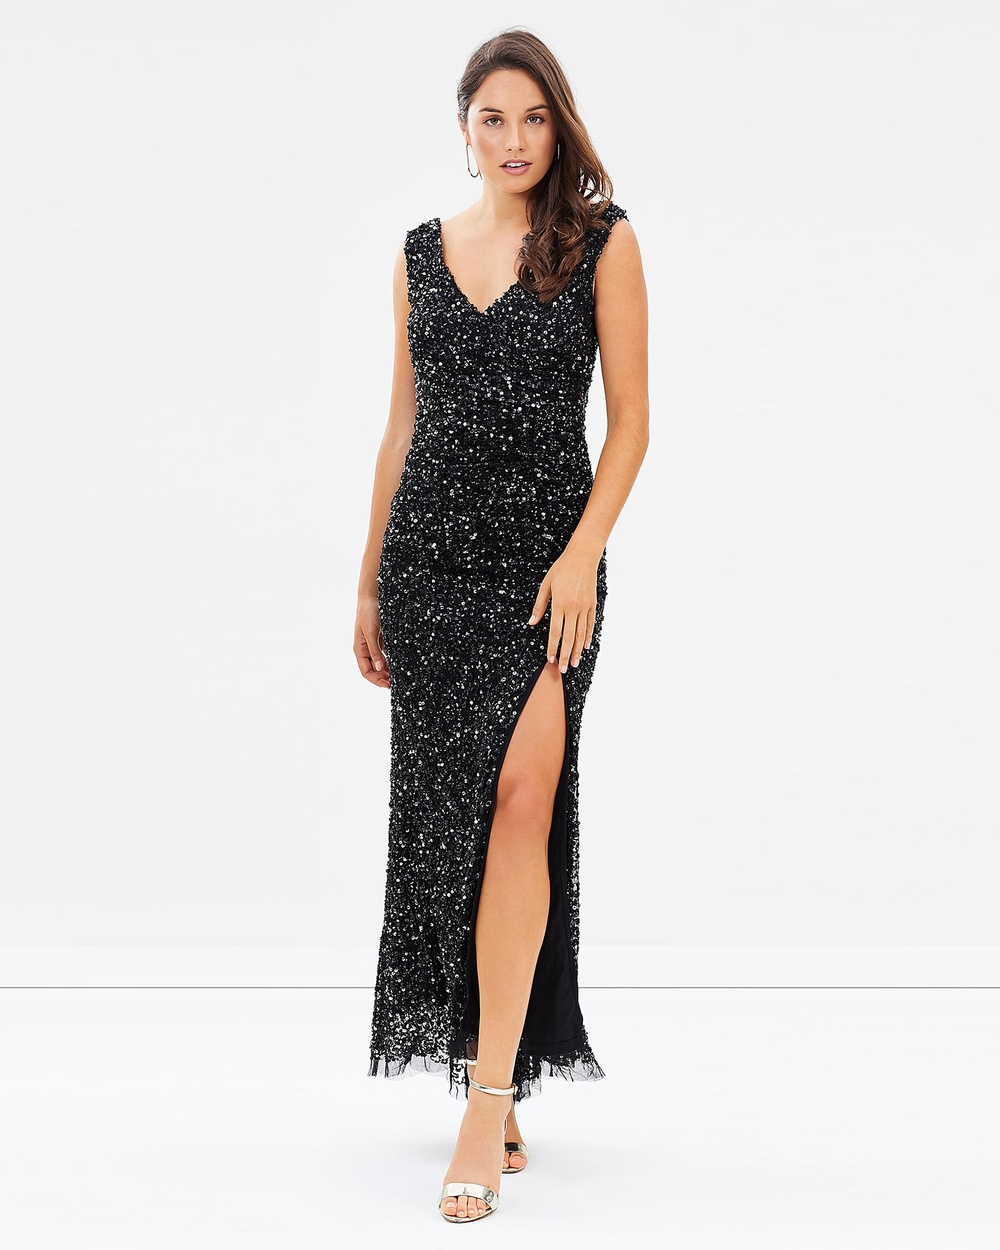 Montique Layla Hand Beaded Gown Dresses Black and Gold Layla Hand Beaded Gown